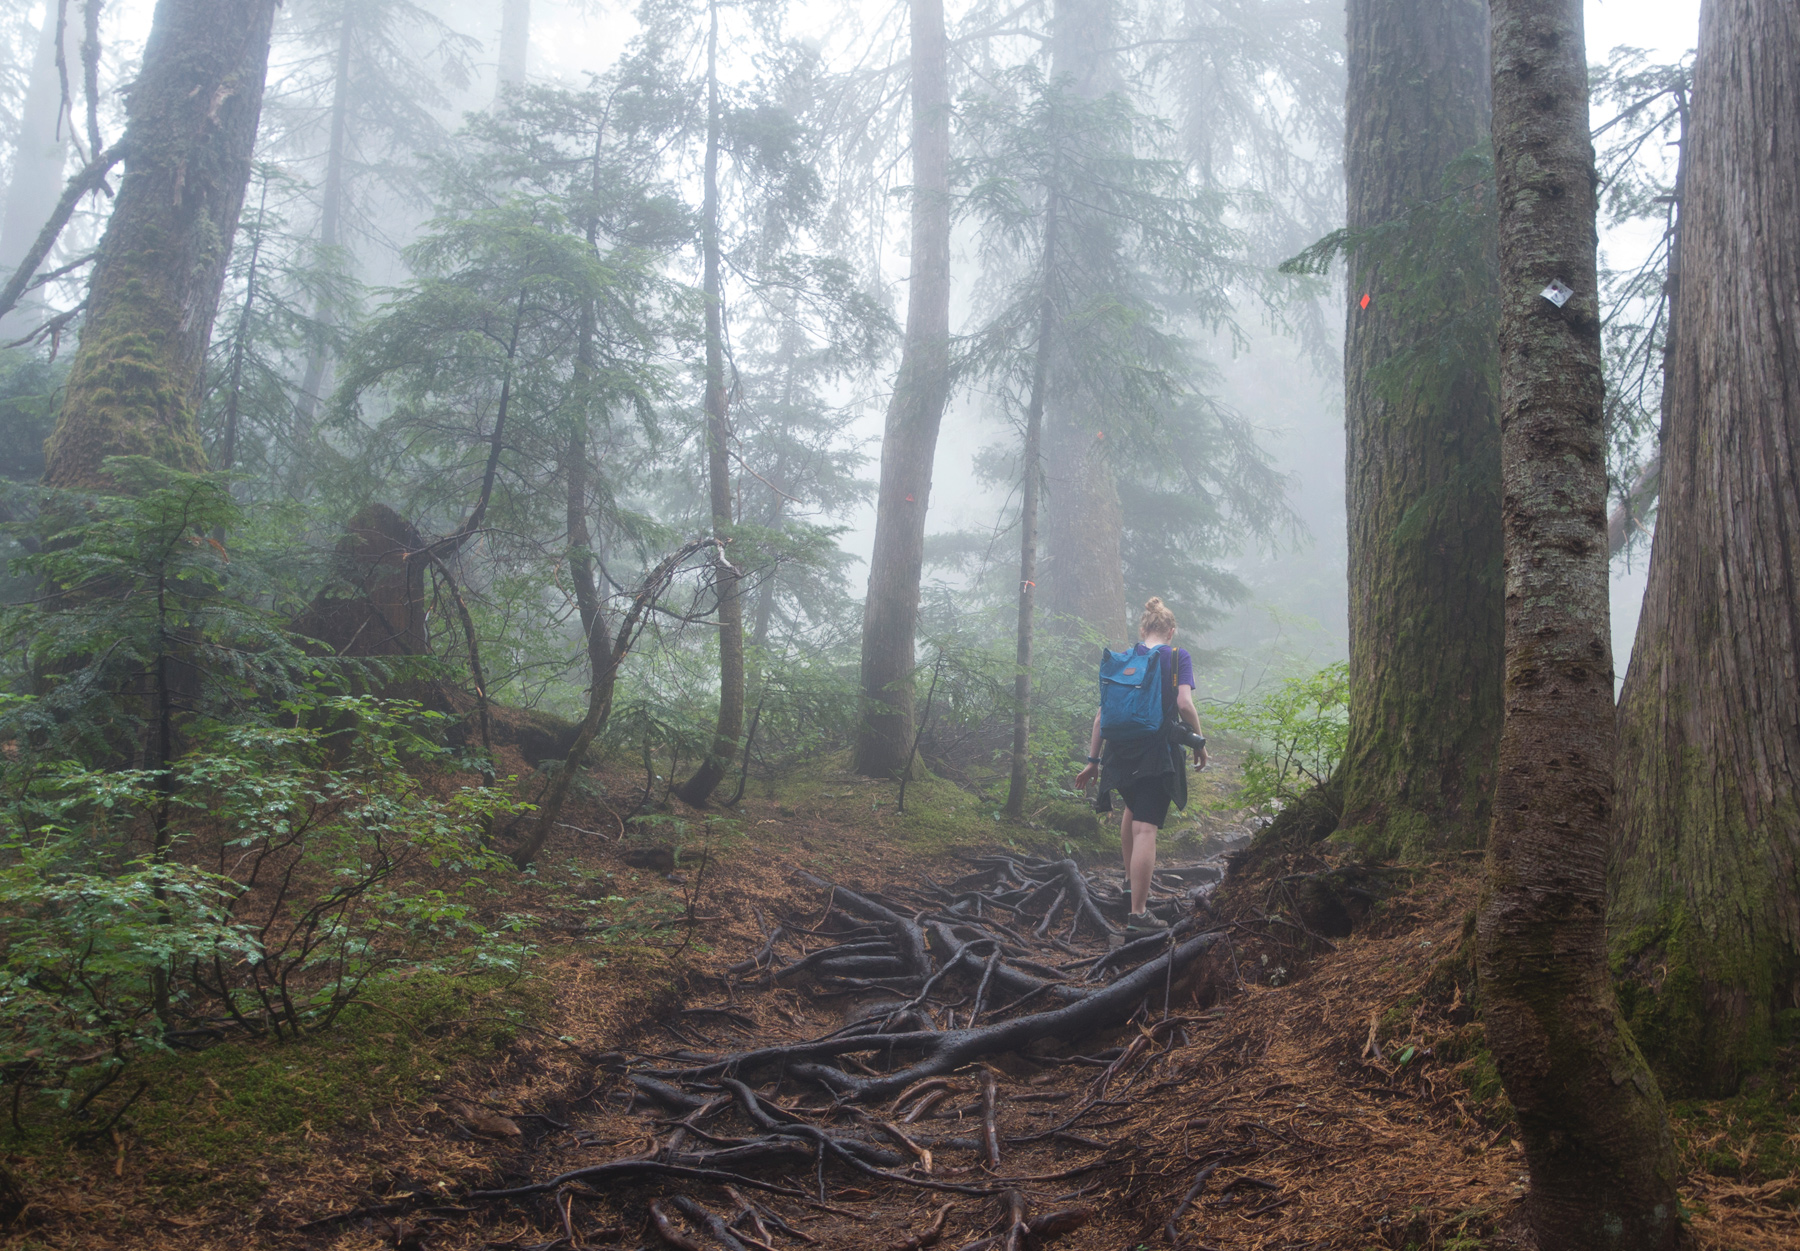 Hiking in the mist